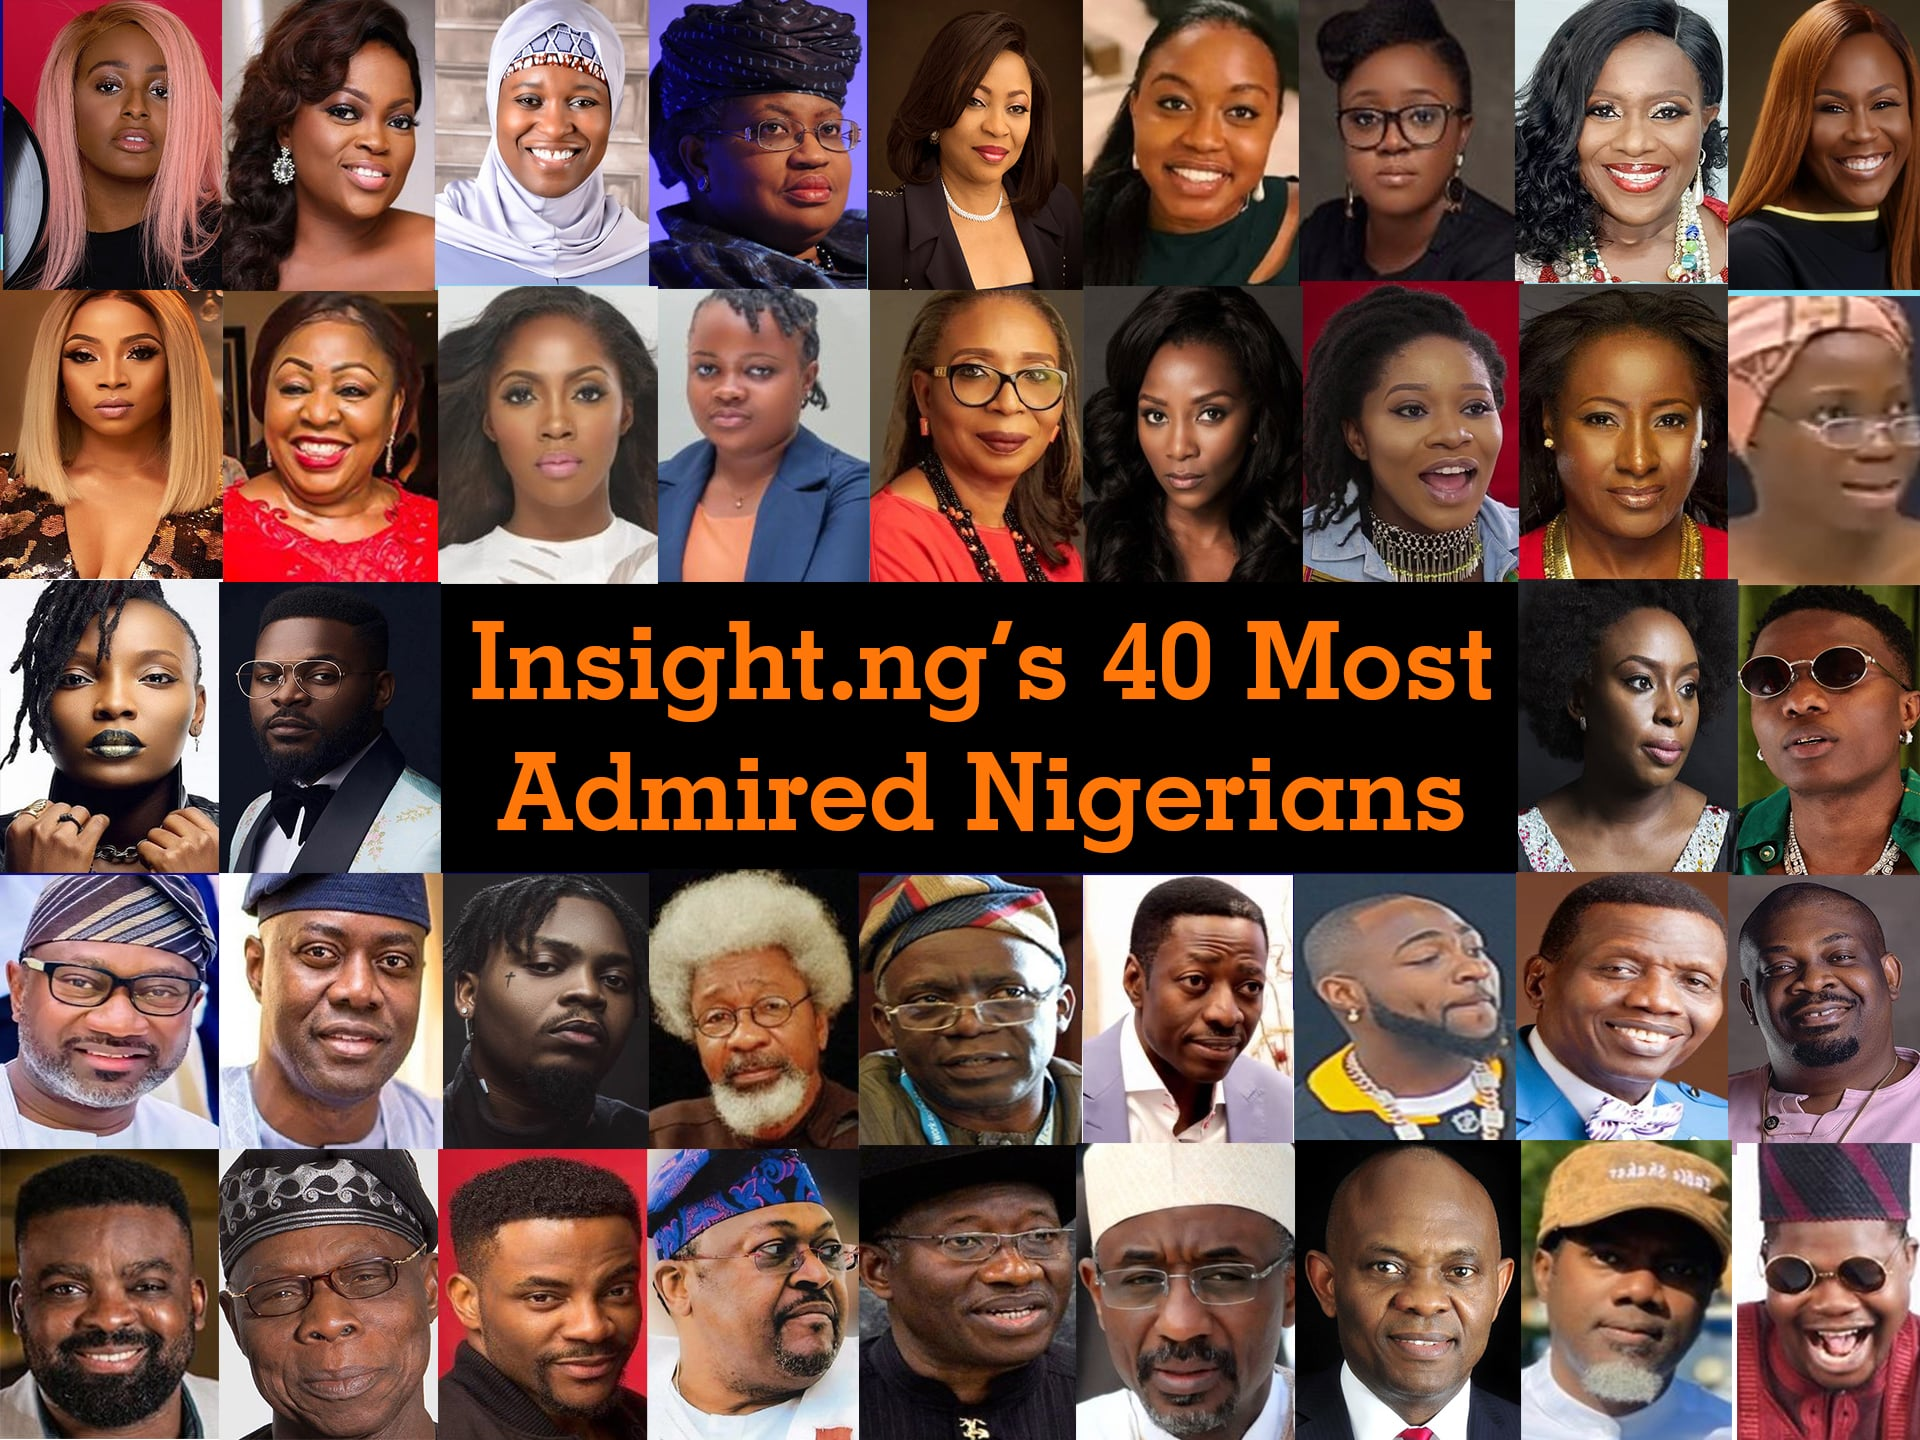 most admired people in Nigeria